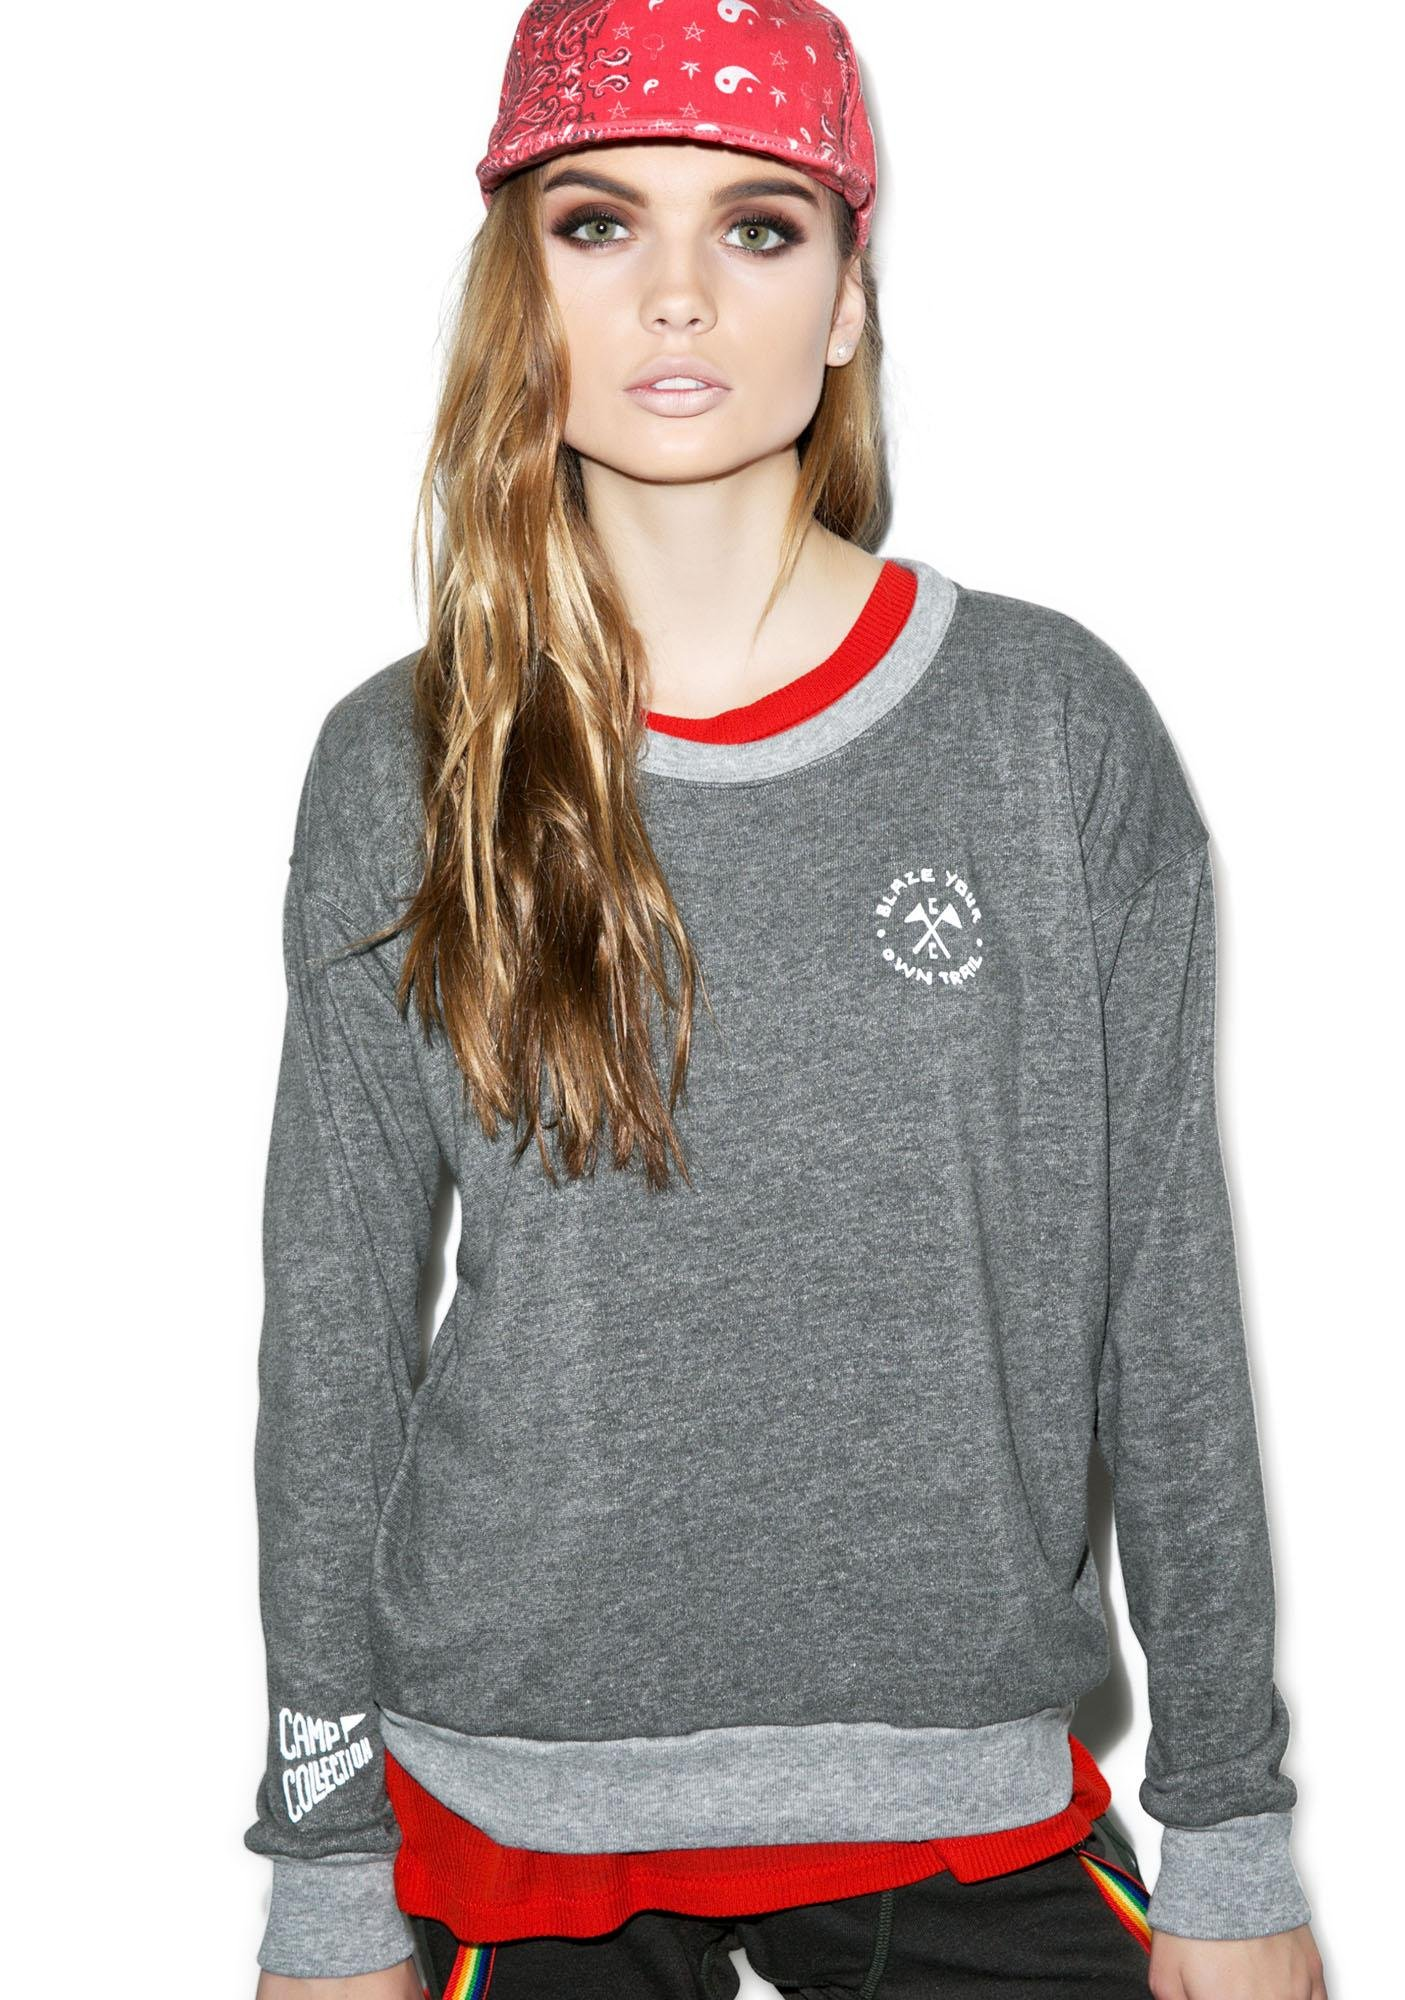 Camp Collection Blaze Your Own Trail Sweatshirt